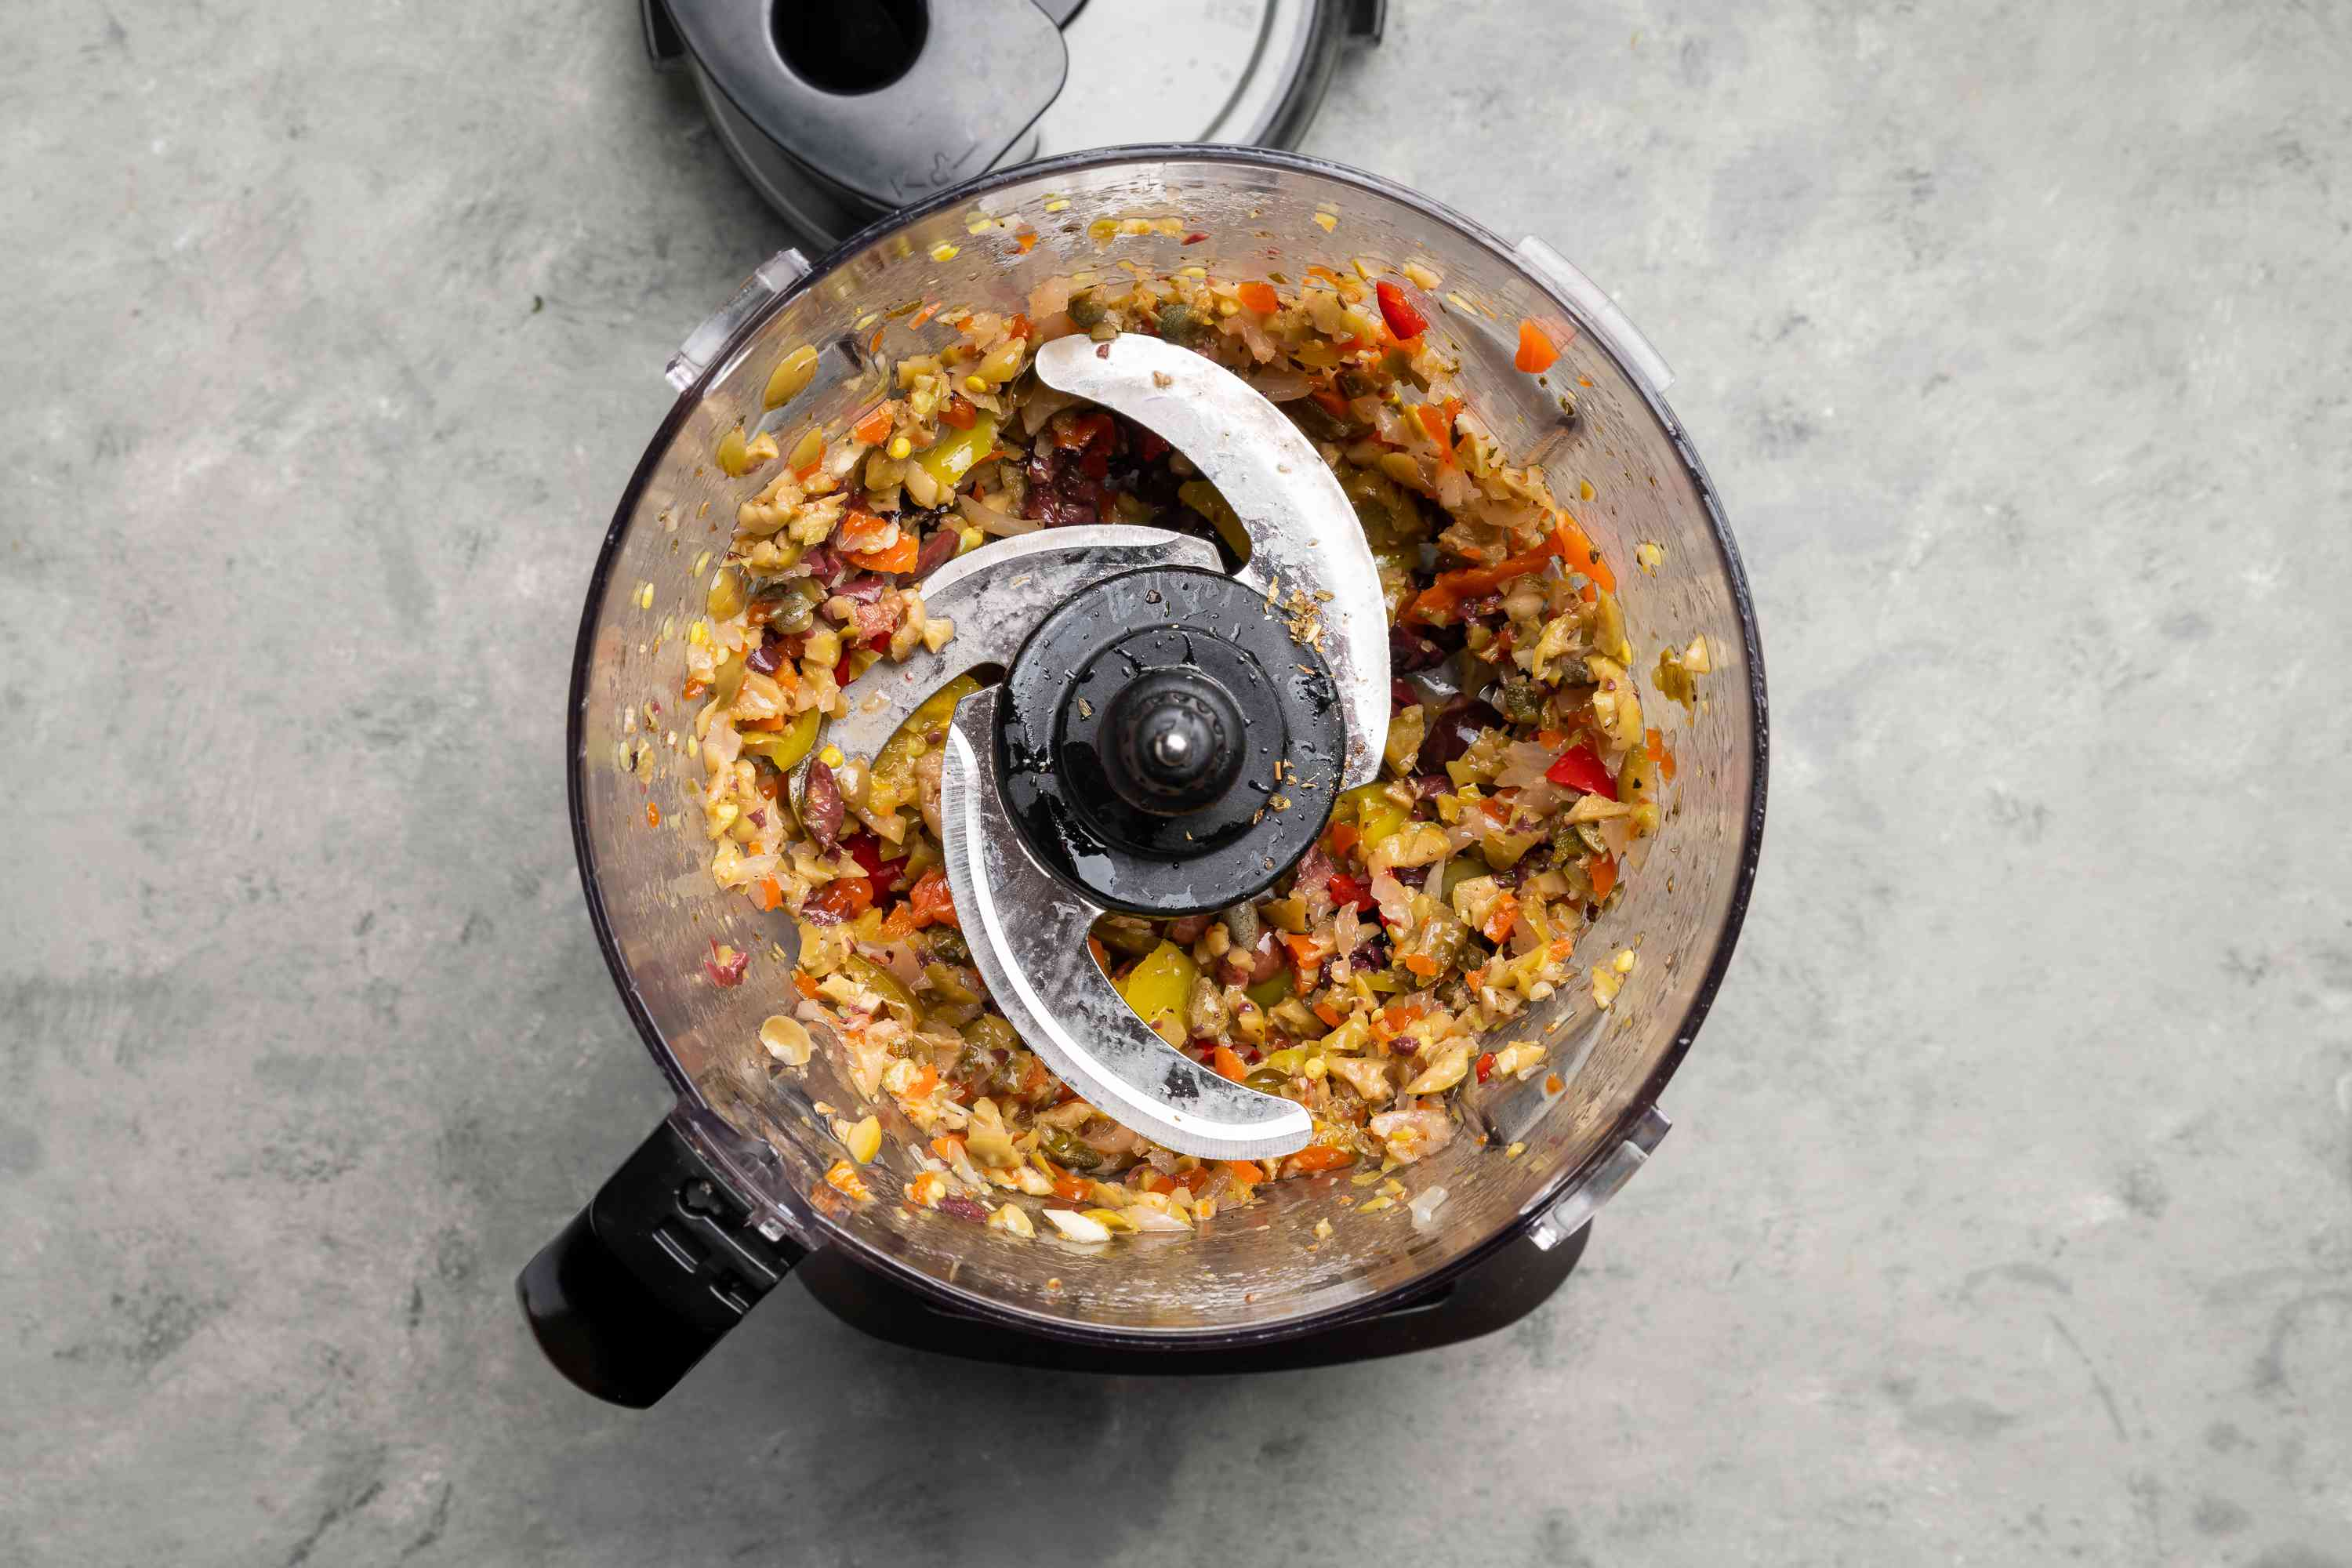 Olive salad ingredients pulsed in food processor until coarsely chopped